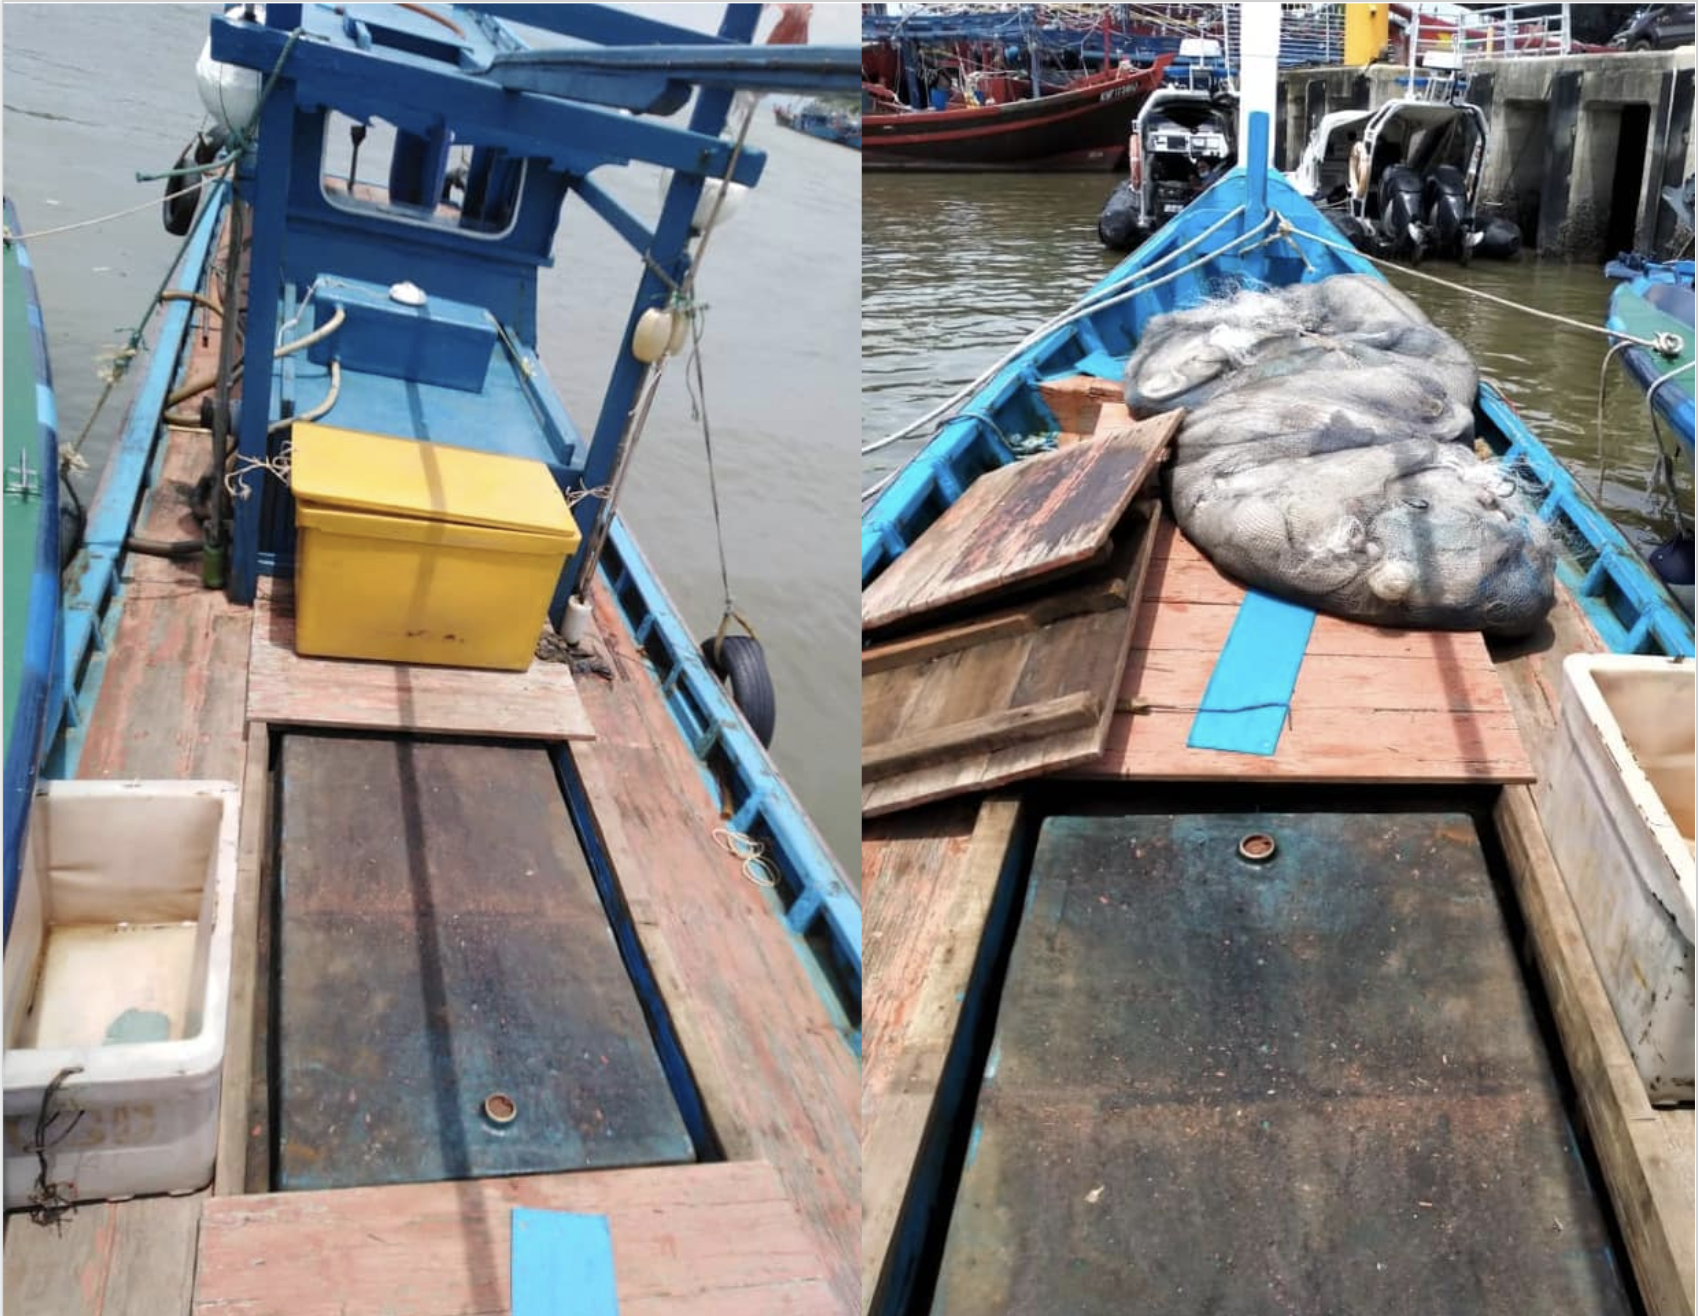 Malaysia: MMEA Perlis detains modified fishing boat suspected of smuggling diesel